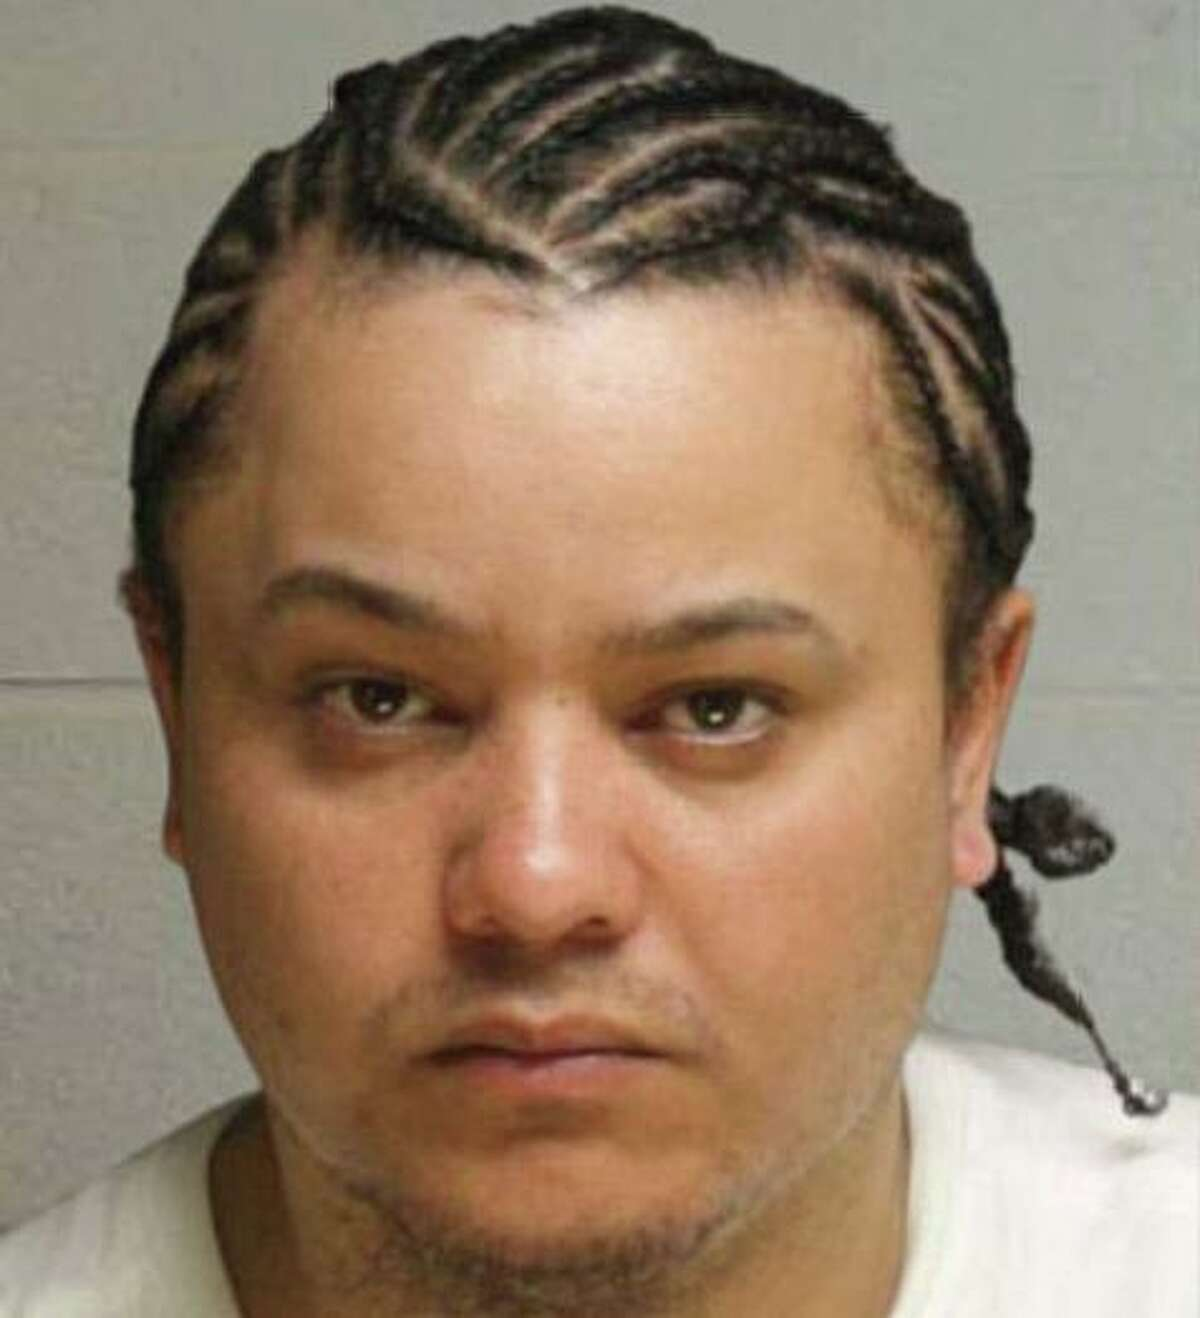 Carlos Reyes-Pagan, 35, remains at large, but Waterbury, Conn., police have an outstanding warrant charging him with murder and first-degree robbery. Police said he has an address on Southampton Street in Boston, Mass., but is known to frequent many cities and towns throughout Massachusetts and Connecticut. He is considered armed and dangerous, police said.